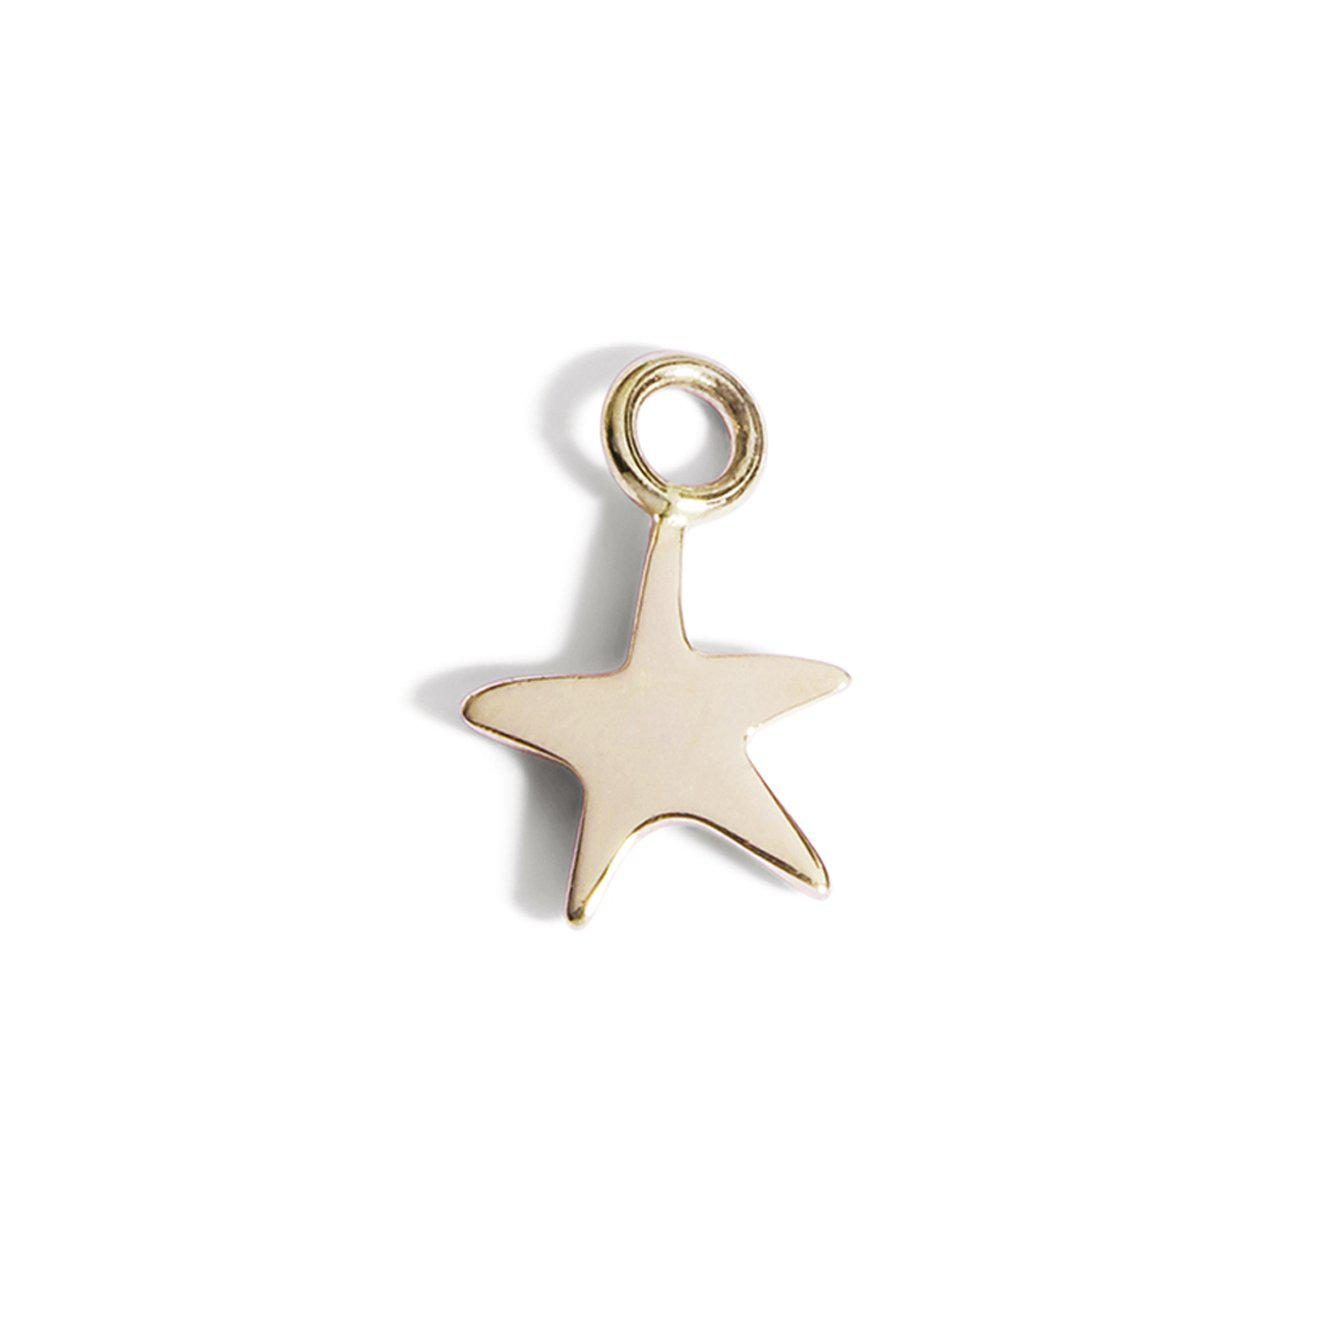 The Yellow Gold Star Charm-Pendant-Black Betty Design